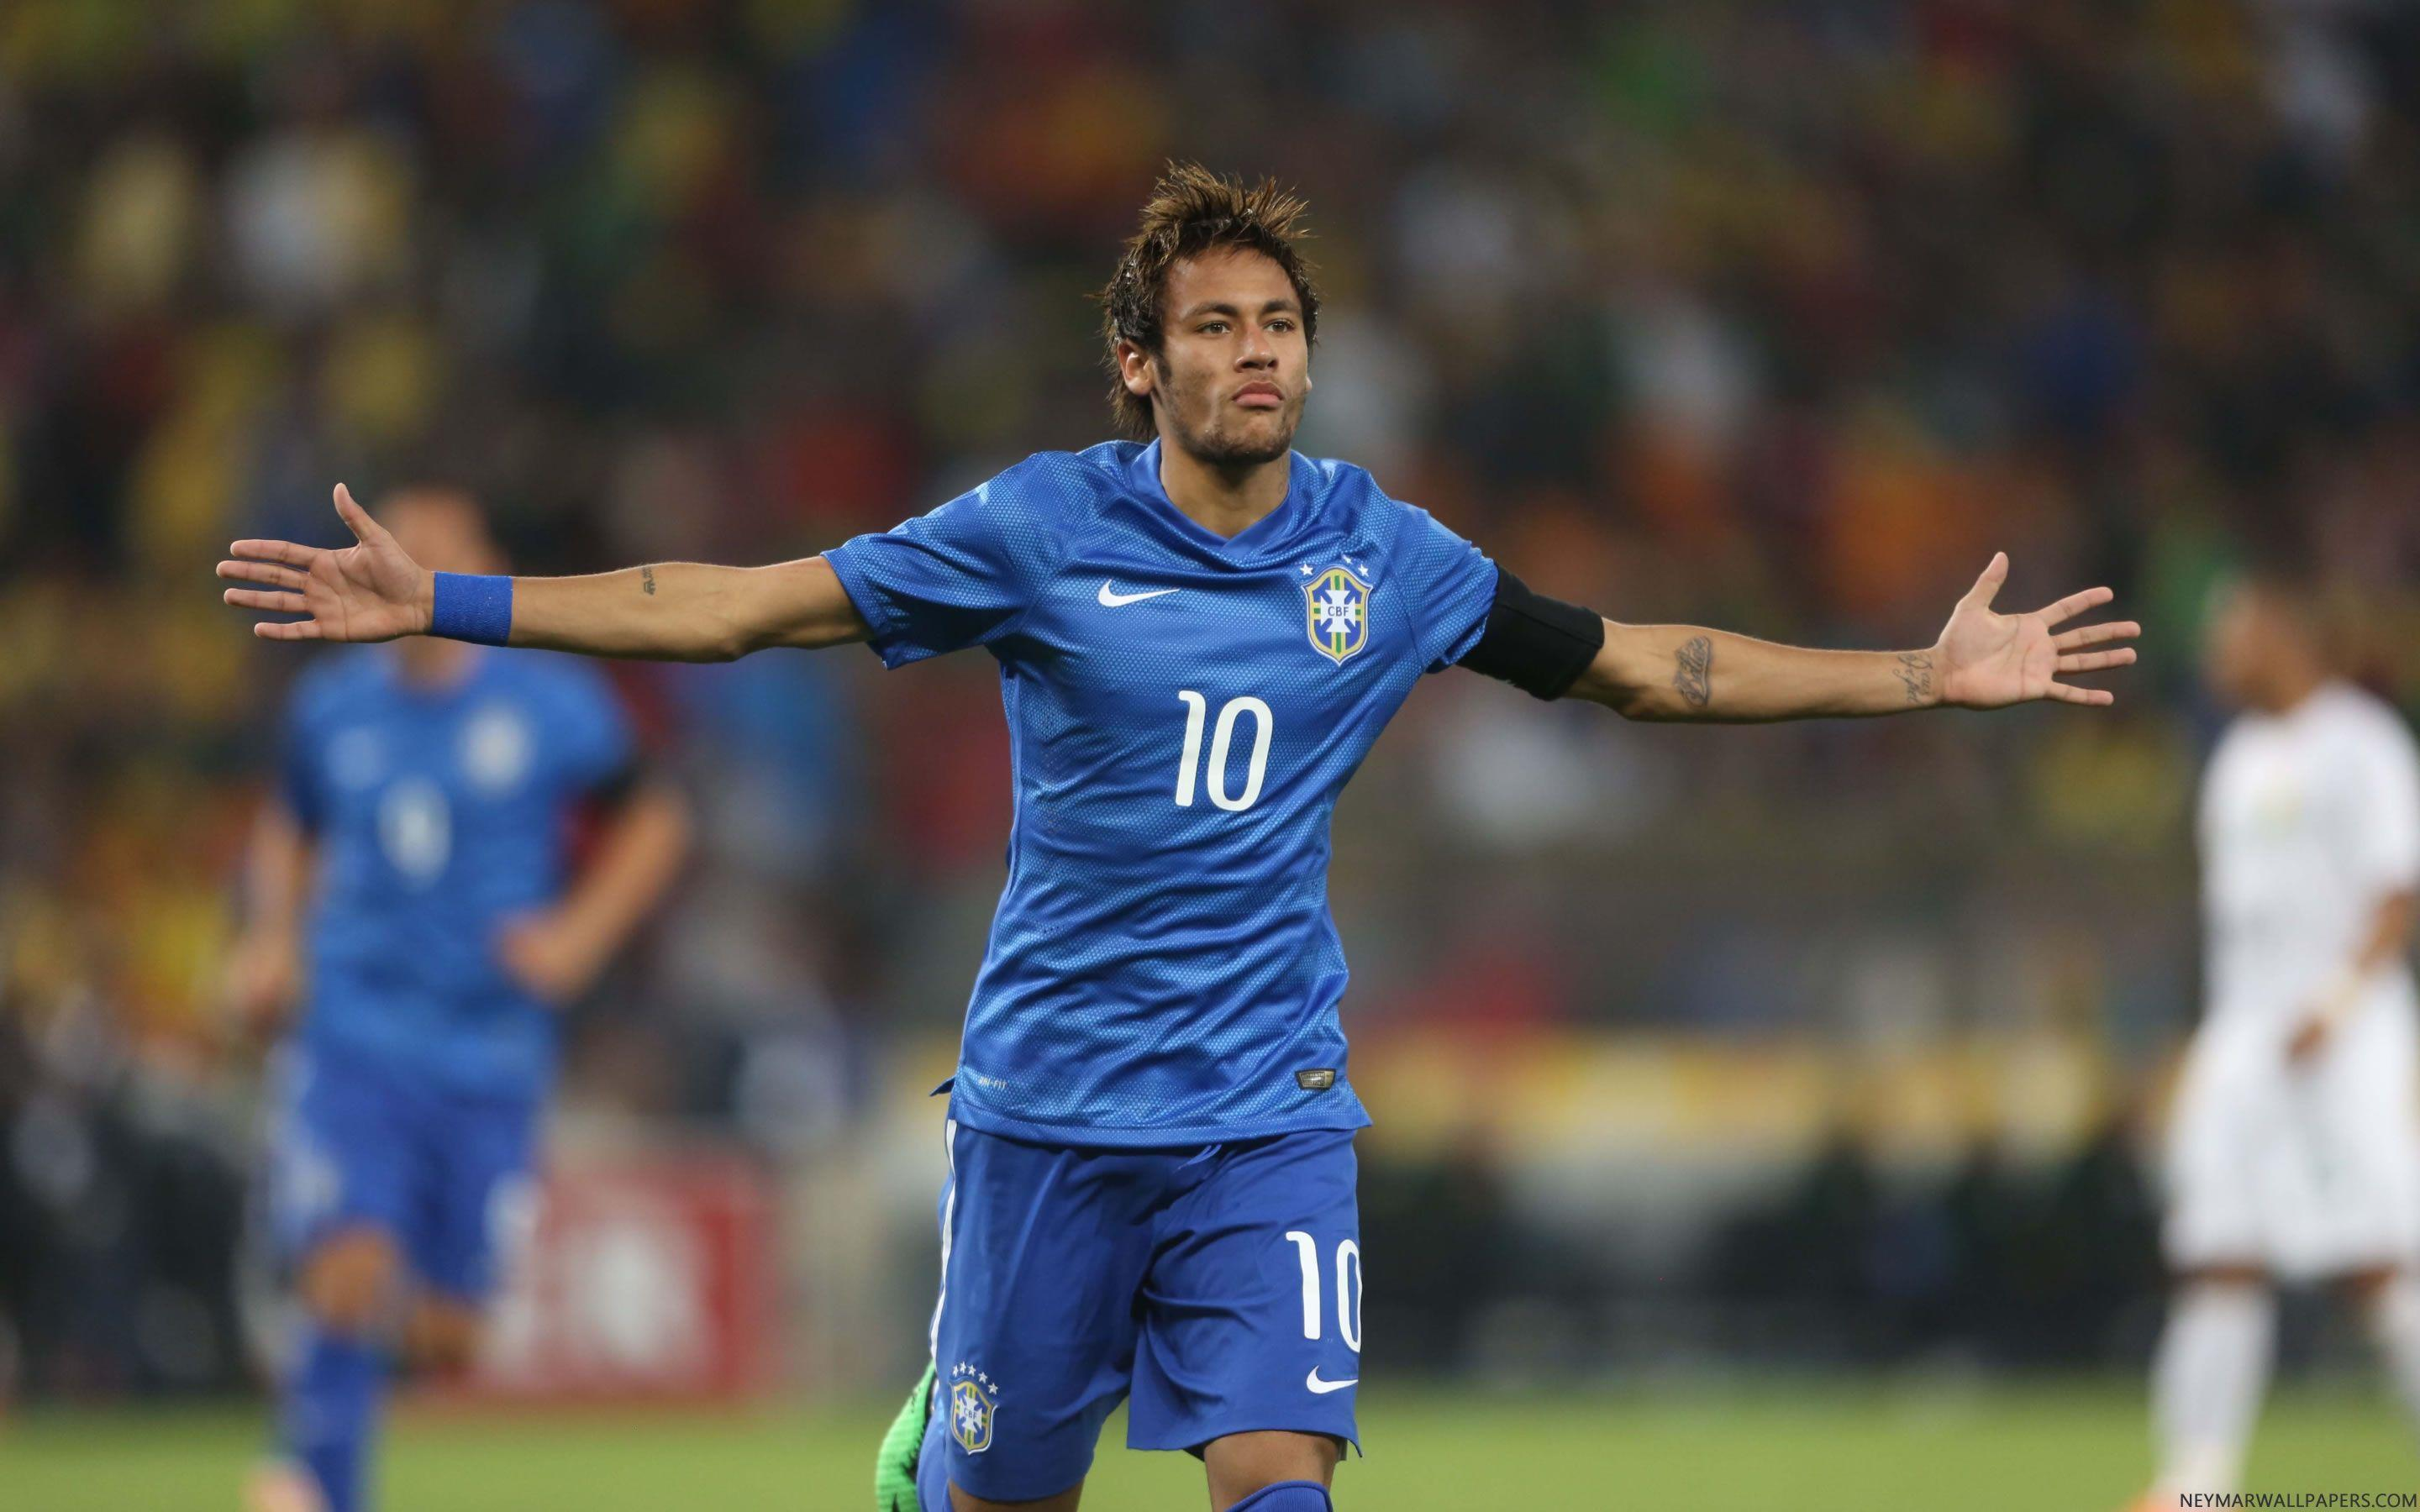 Neymar Brazil blue jersey celebrating - Neymar Wallpapers